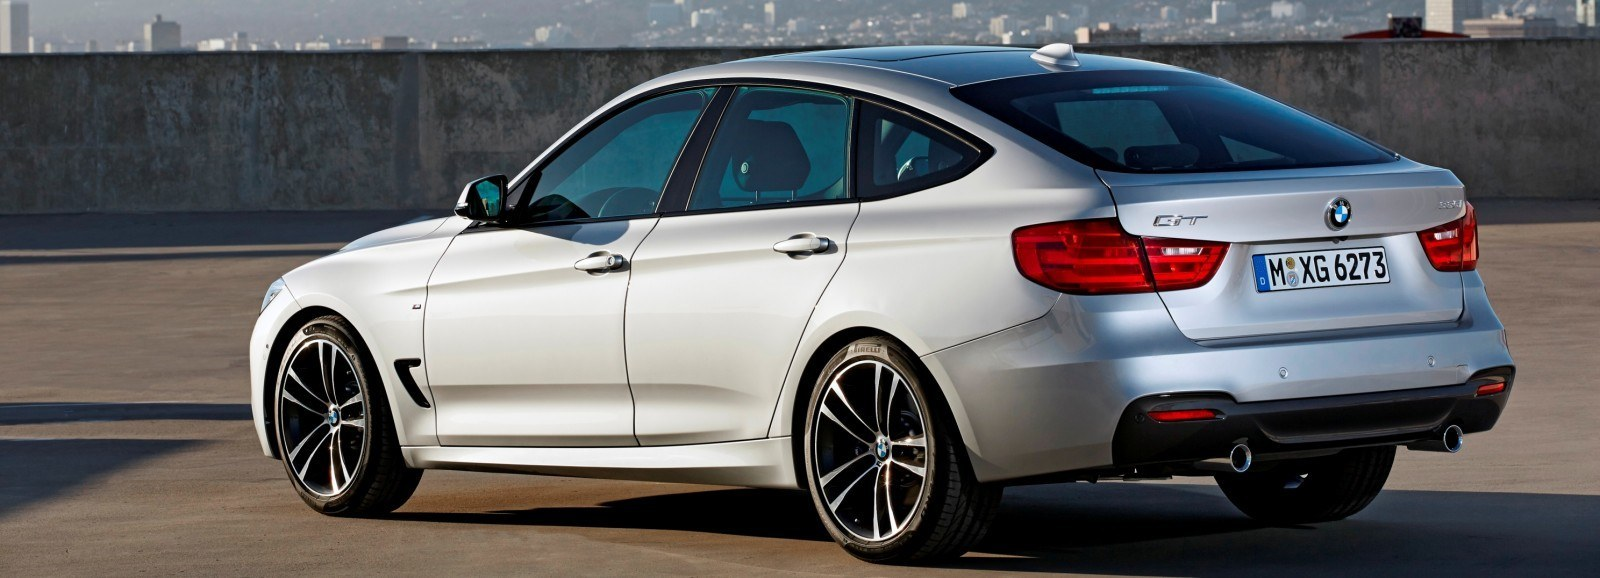 Best of Awards - 1000 miles at 100MPH - 2014 M Sport BMW 335i GT 75